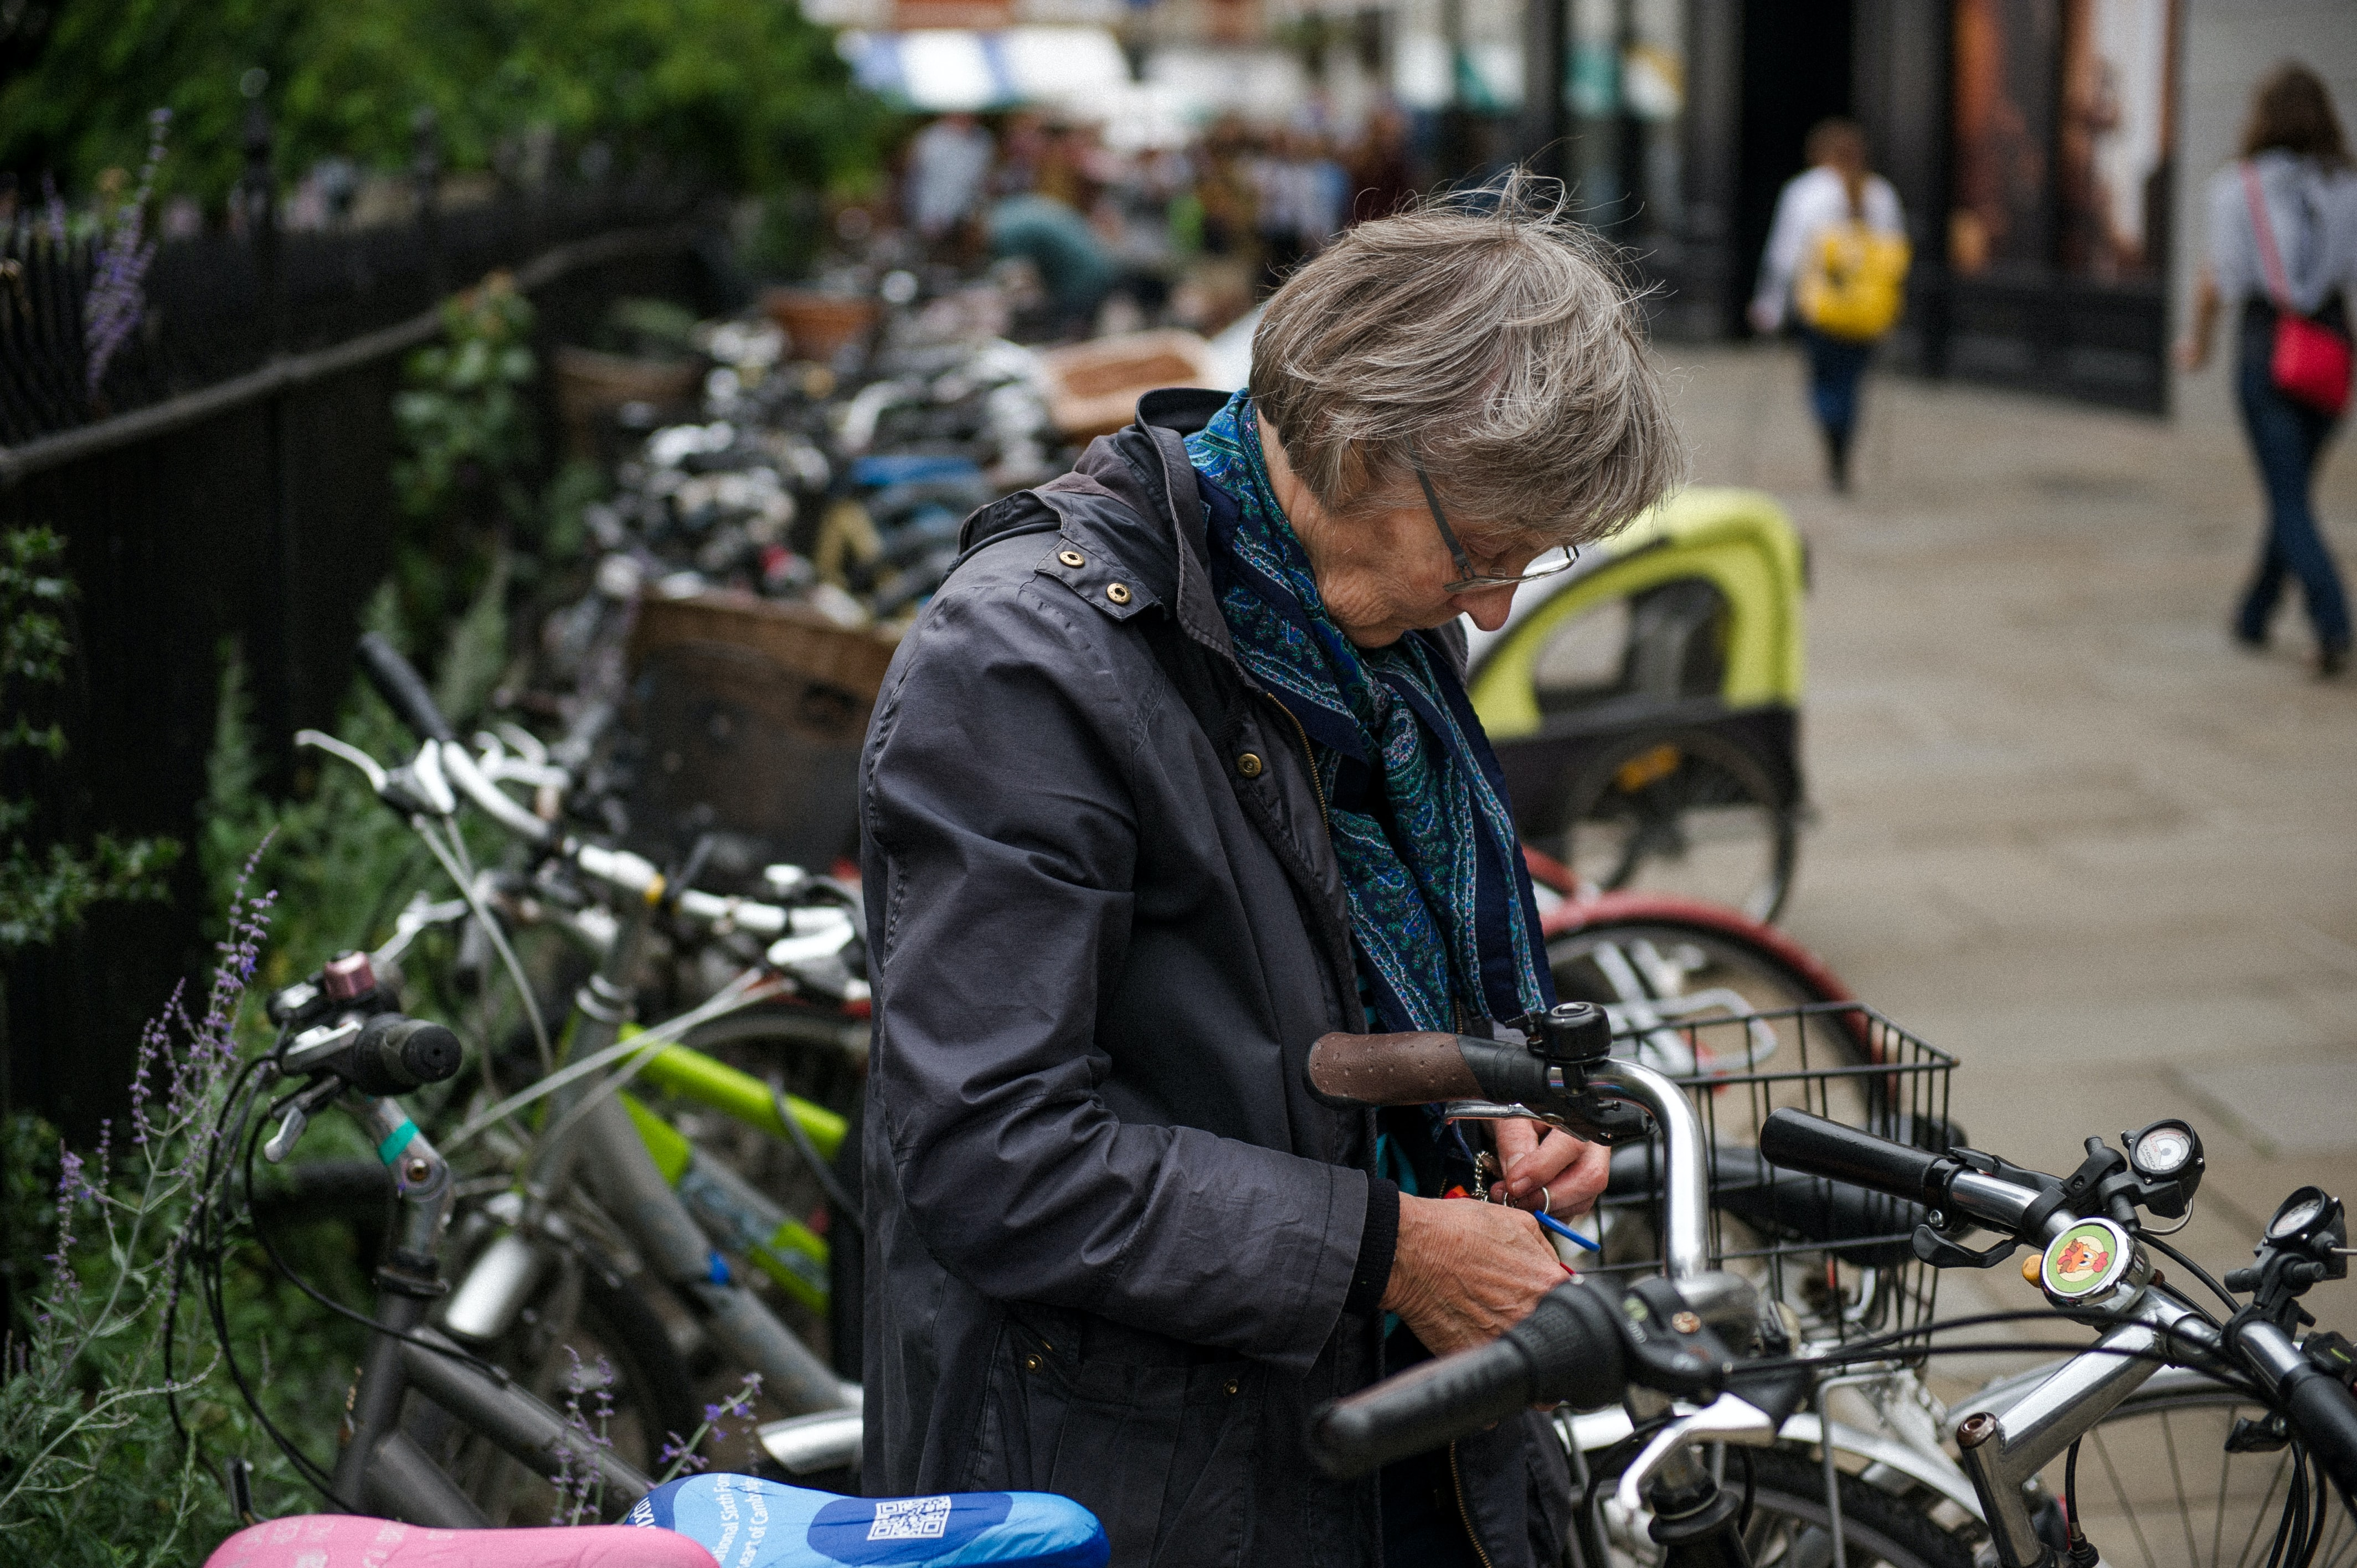 Older woman secures her bicycle on a rack in the city